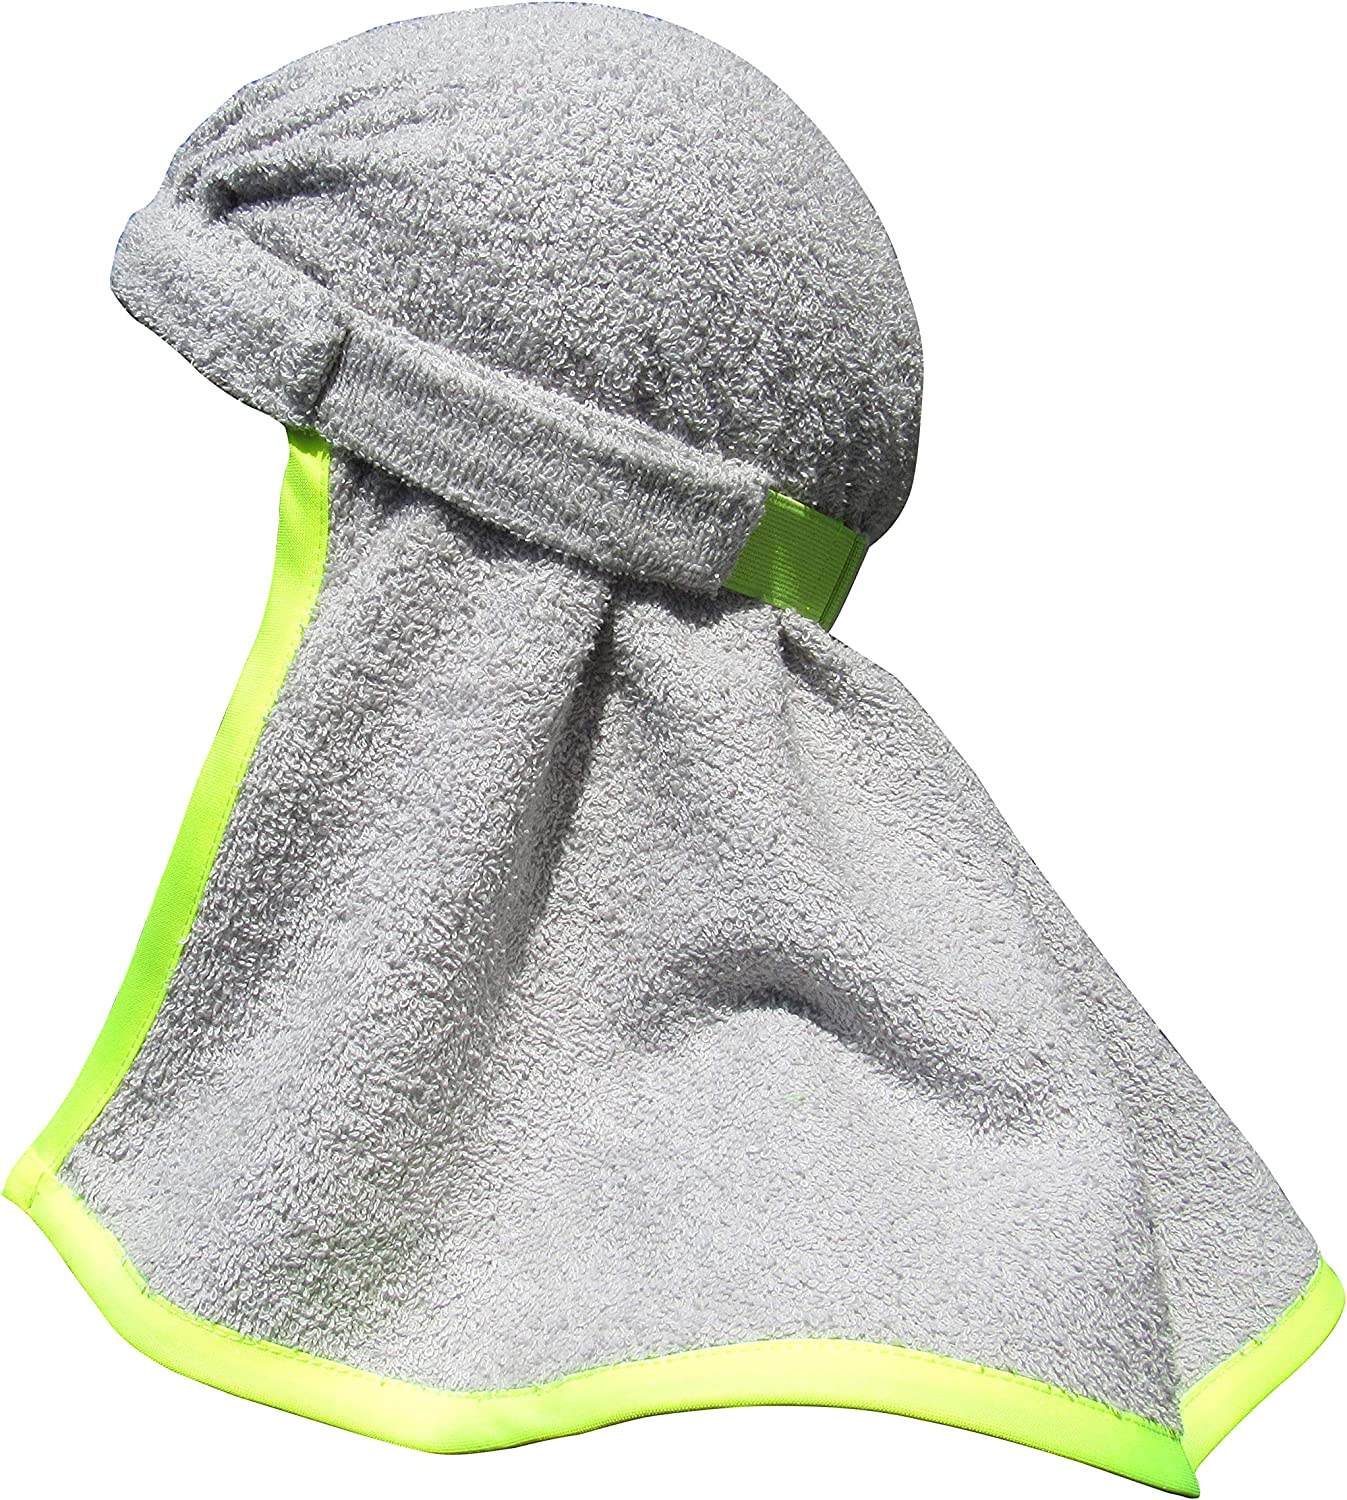 Polarheads ActivShield Performance Towel 3-in-1 Sweatband, Sun Shade and Cooling Towel. Perfect for Fitness and Outdoor Activities.